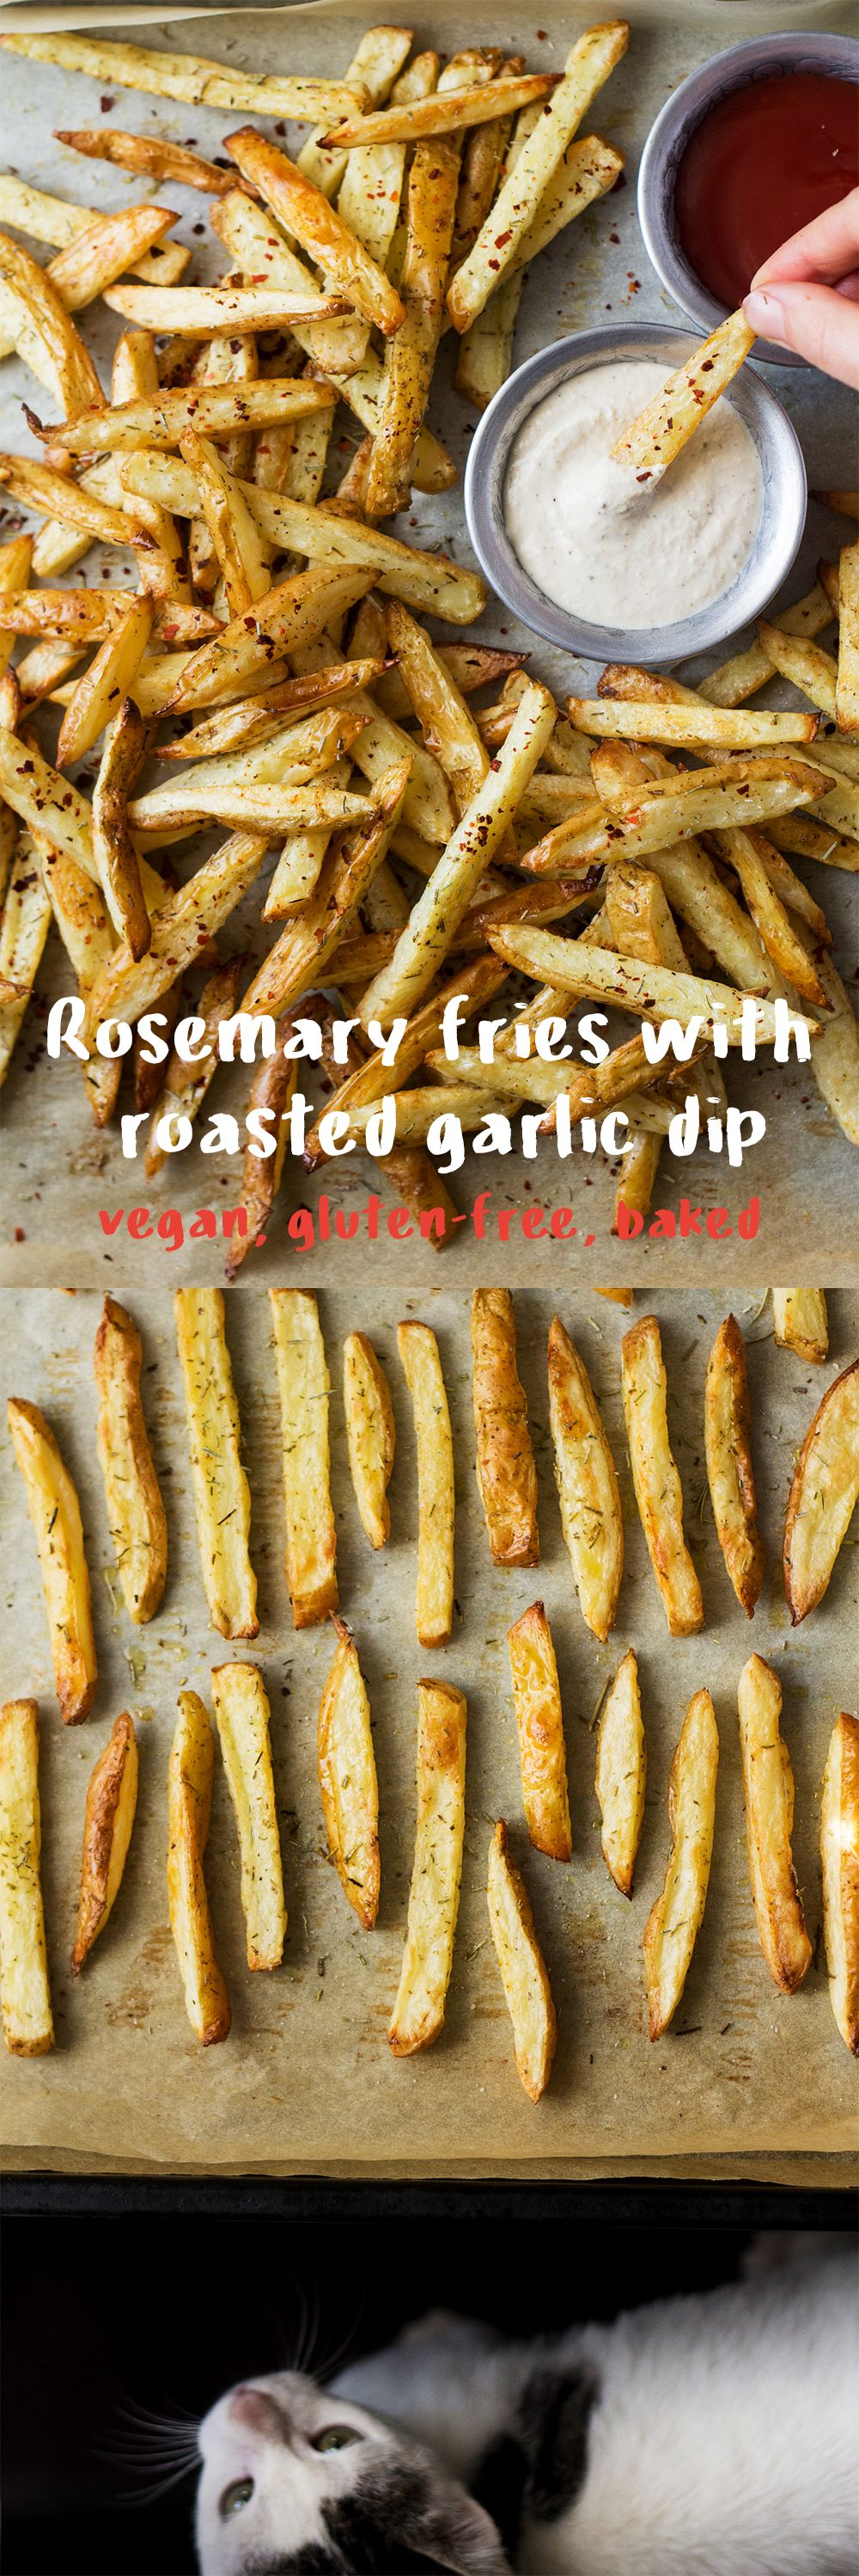 baked rosemary fries with a